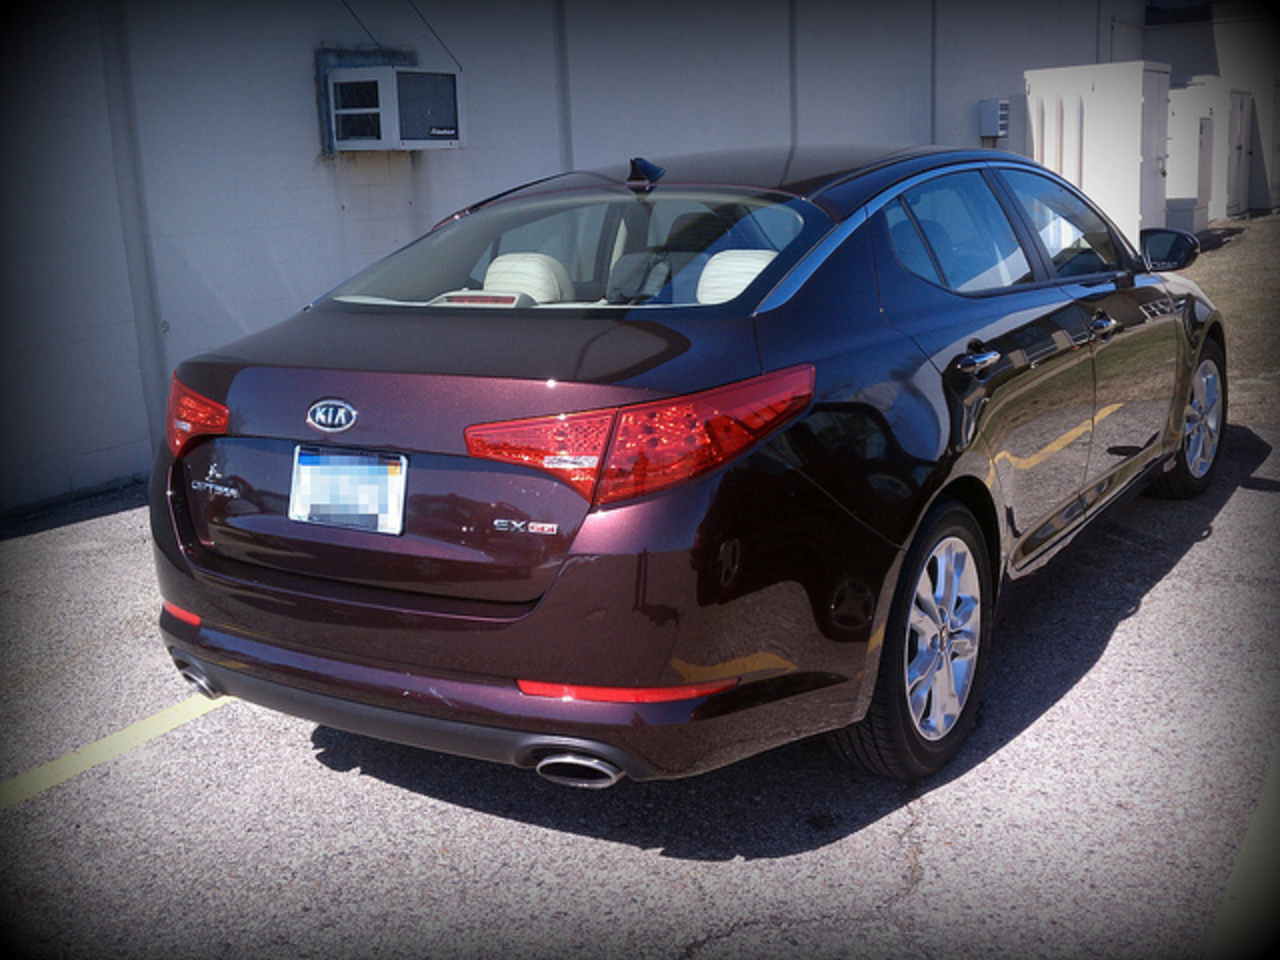 2011 Kia Optima EX GDI | Flickr - Photo Sharing!